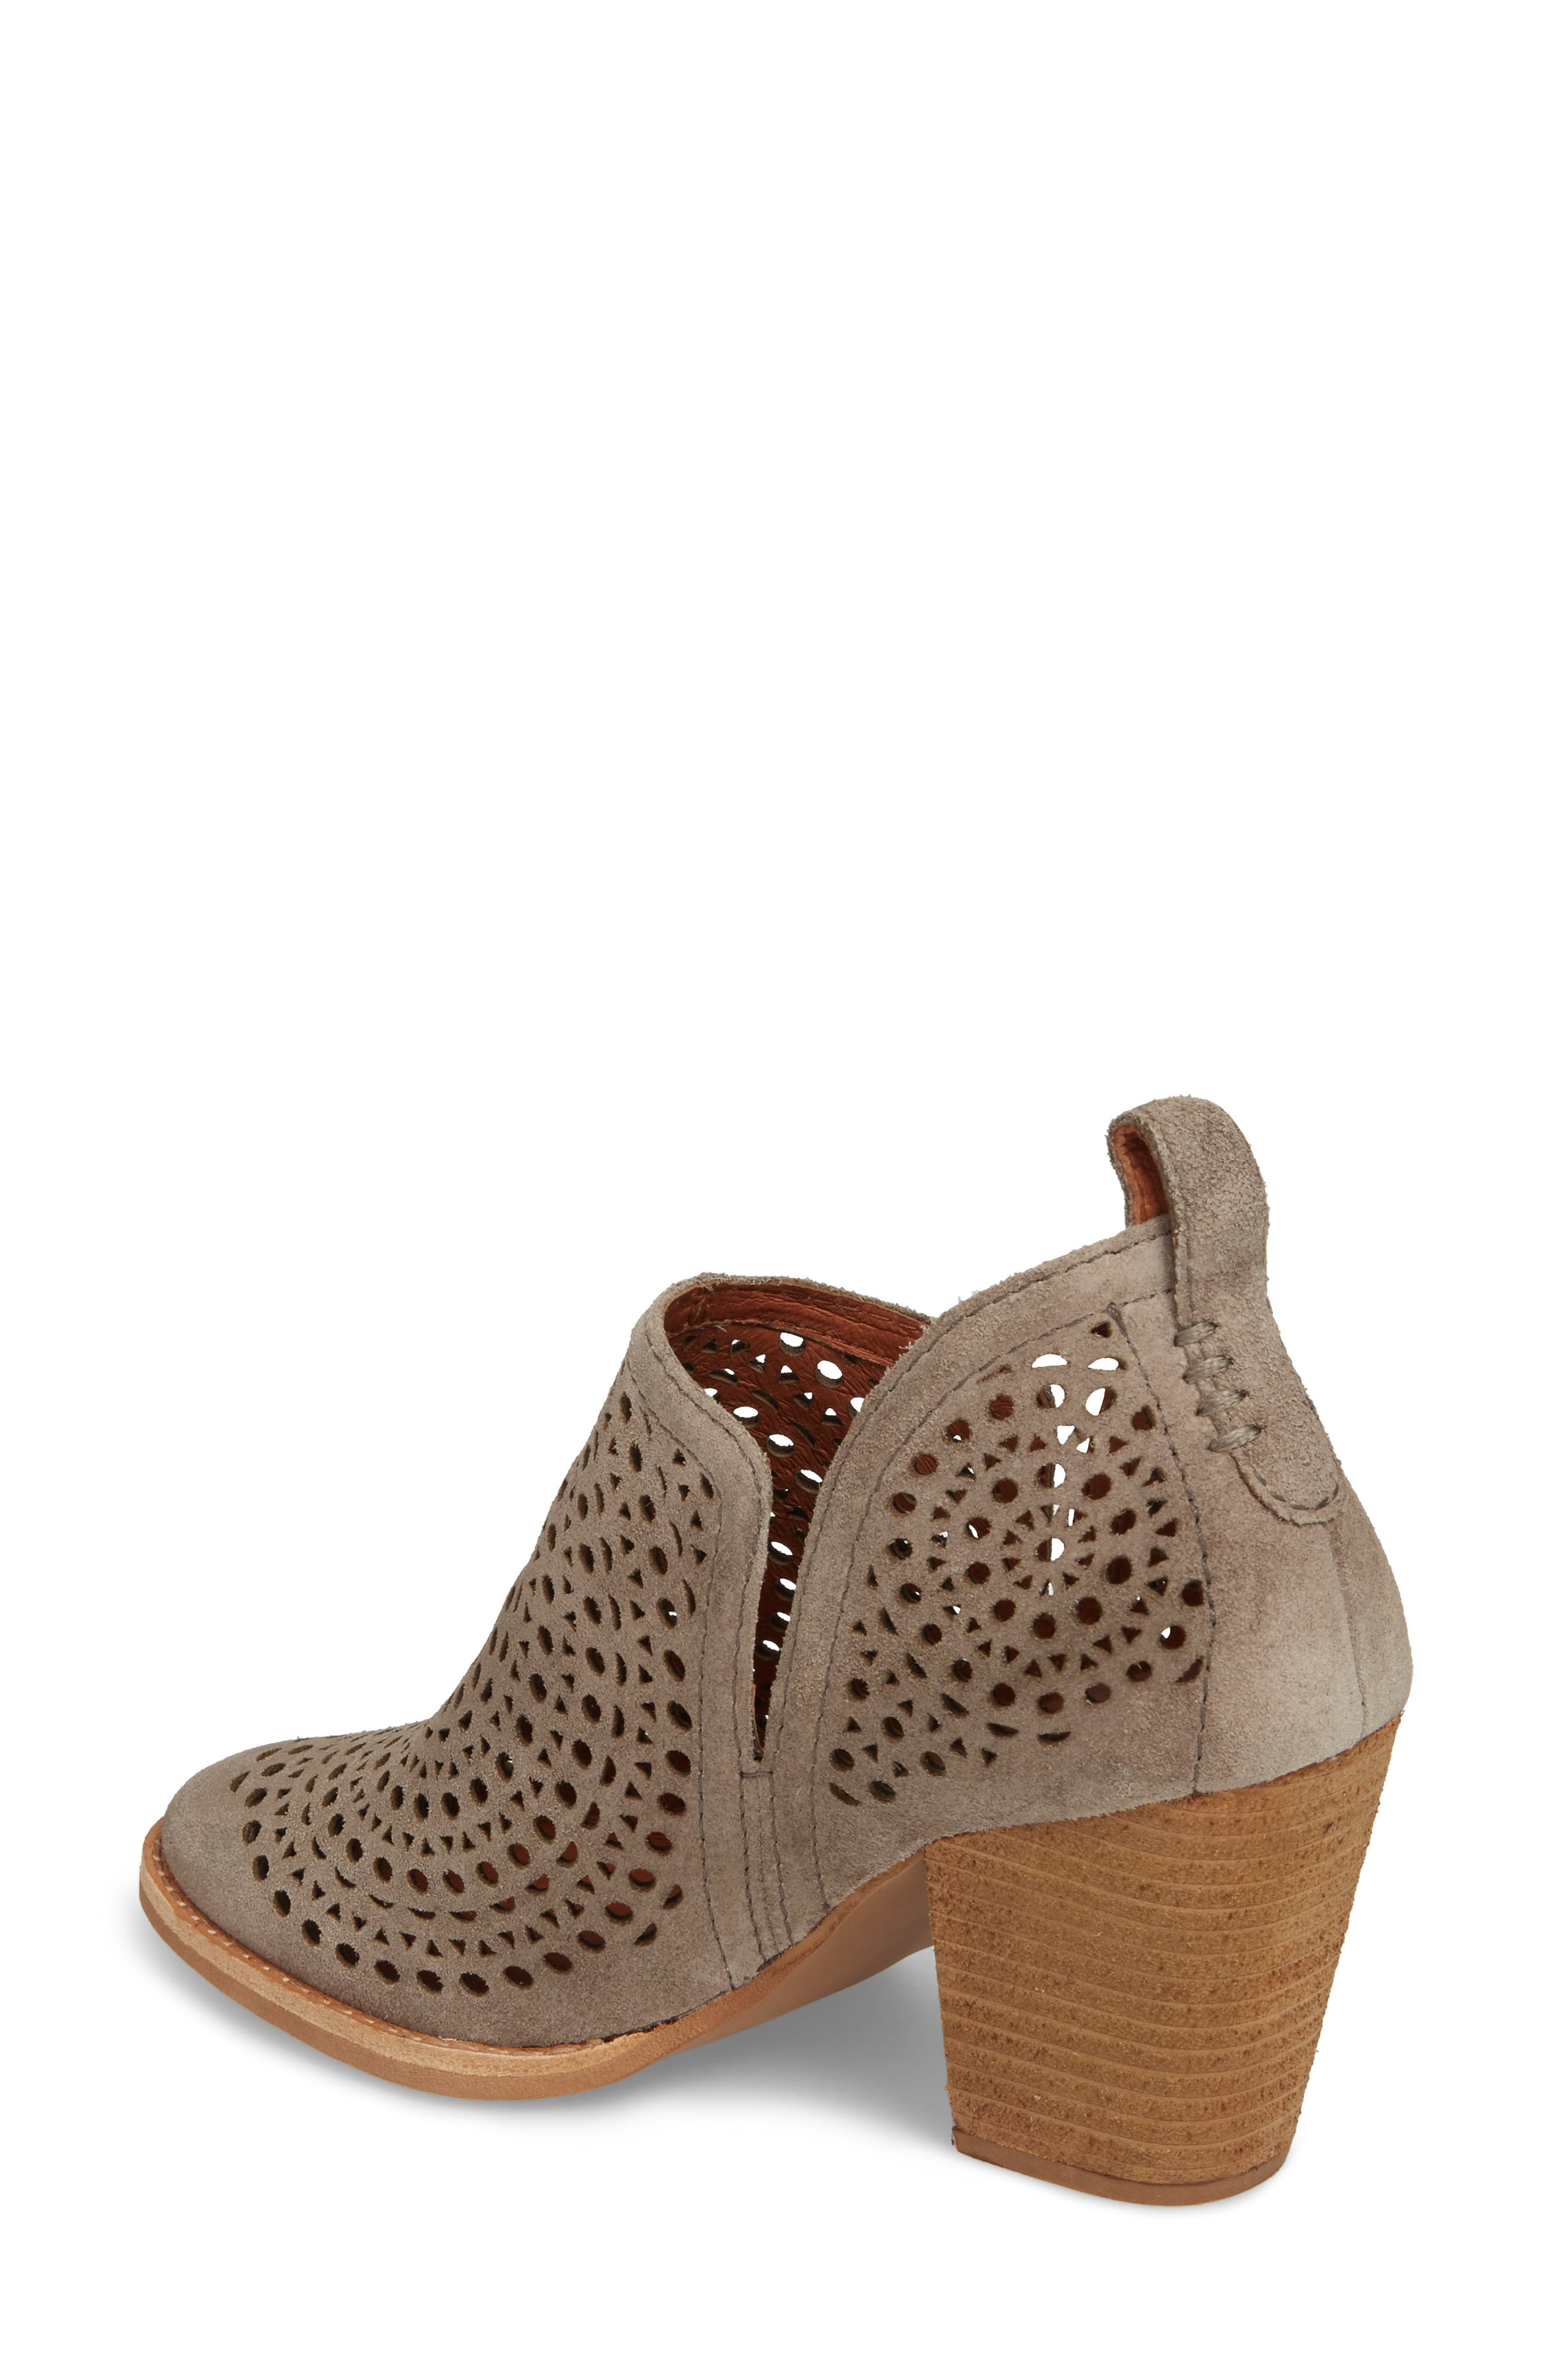 Rosalee Bootie,                             Alternate thumbnail 2, color,                             TAUPE SUEDE